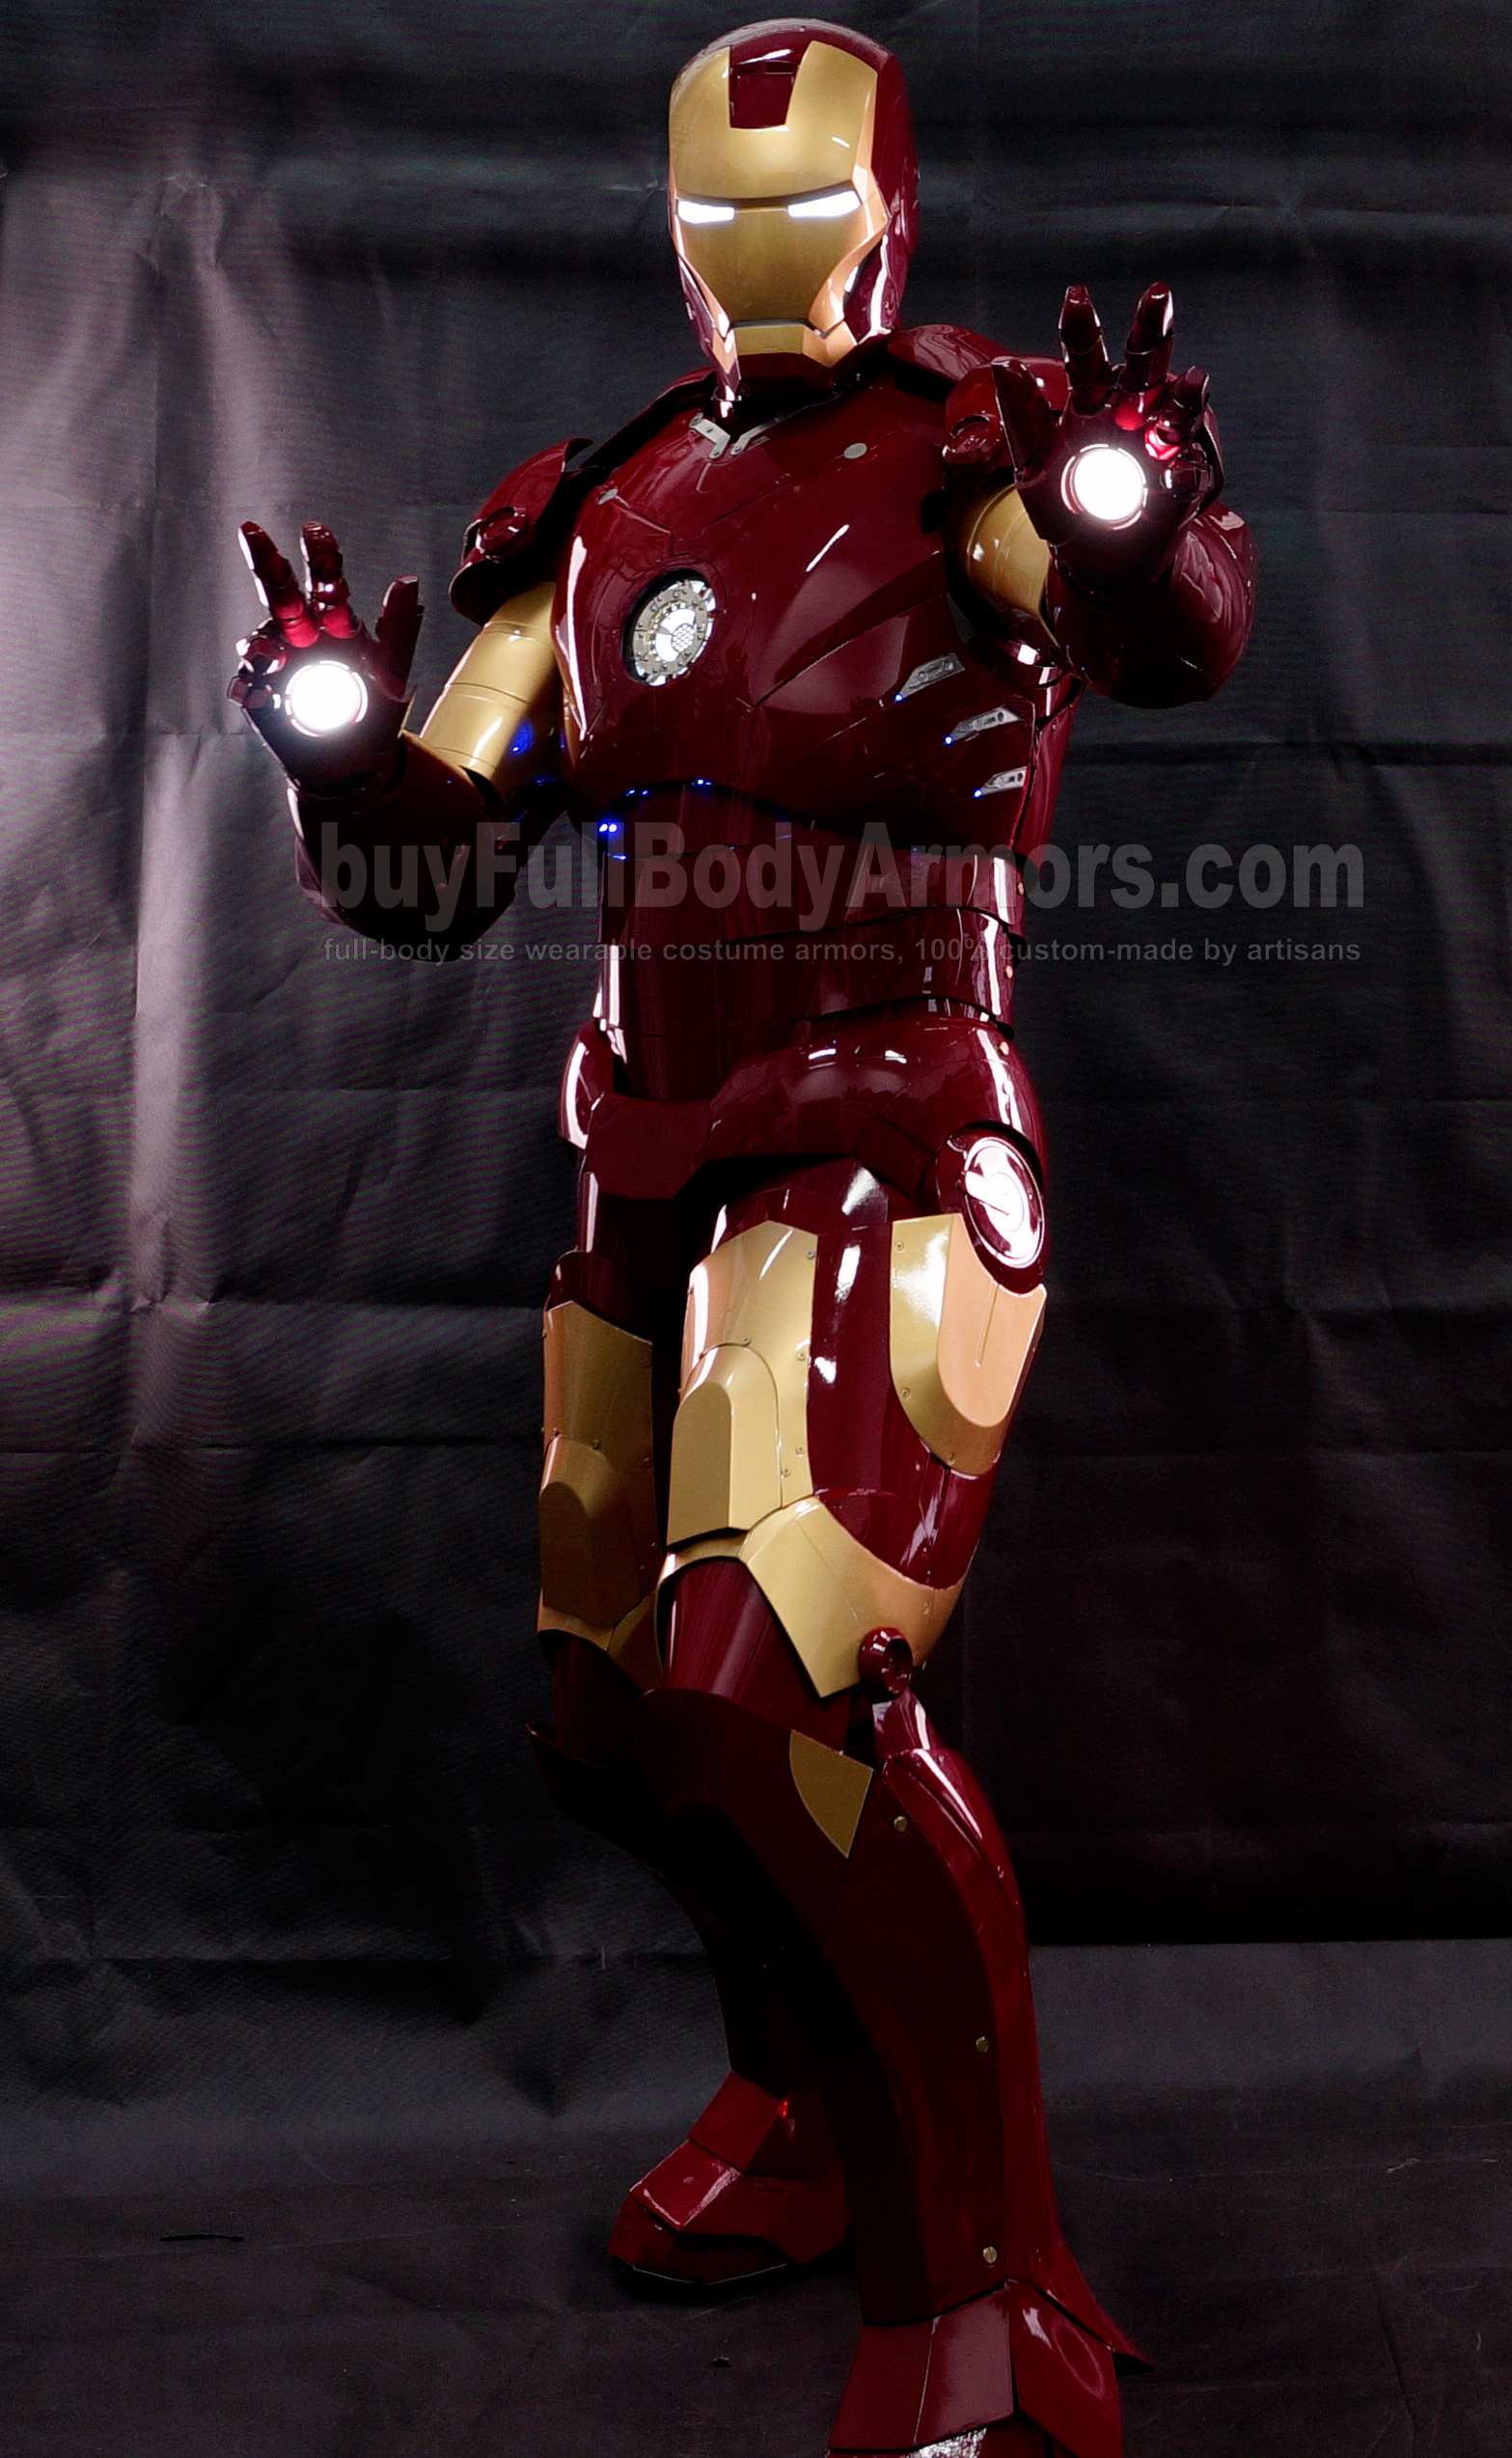 High Definition Photos of the Wearable Iron Man Mark 3 III Armor Costume Suit 0